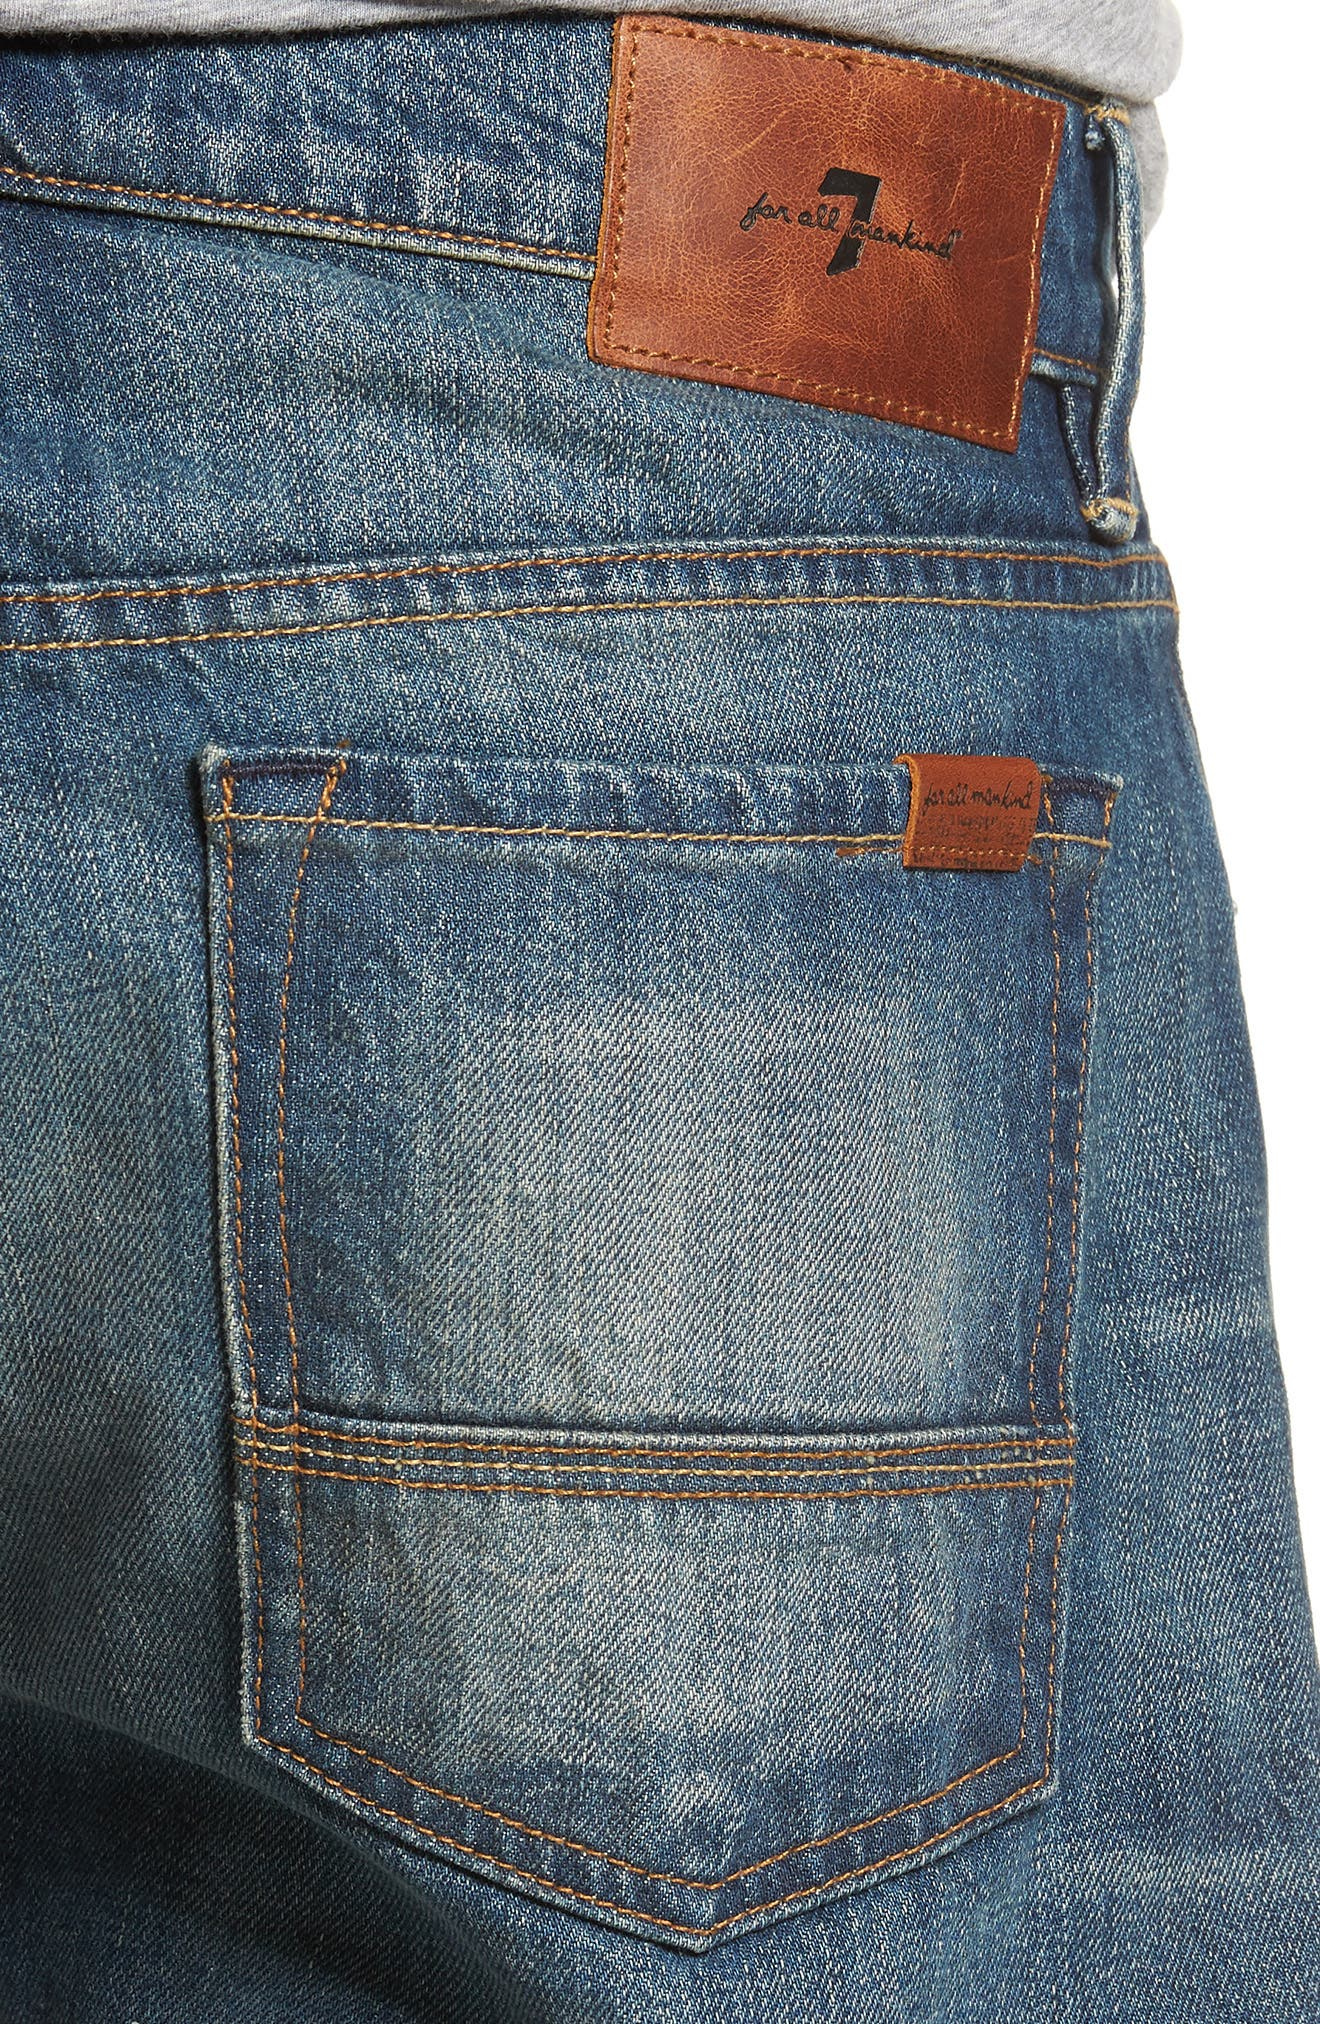 7 FOR ALL MANKIND<SUP>®</SUP>, Adrien Slim Fit Jeans, Alternate thumbnail 4, color, LEGEND